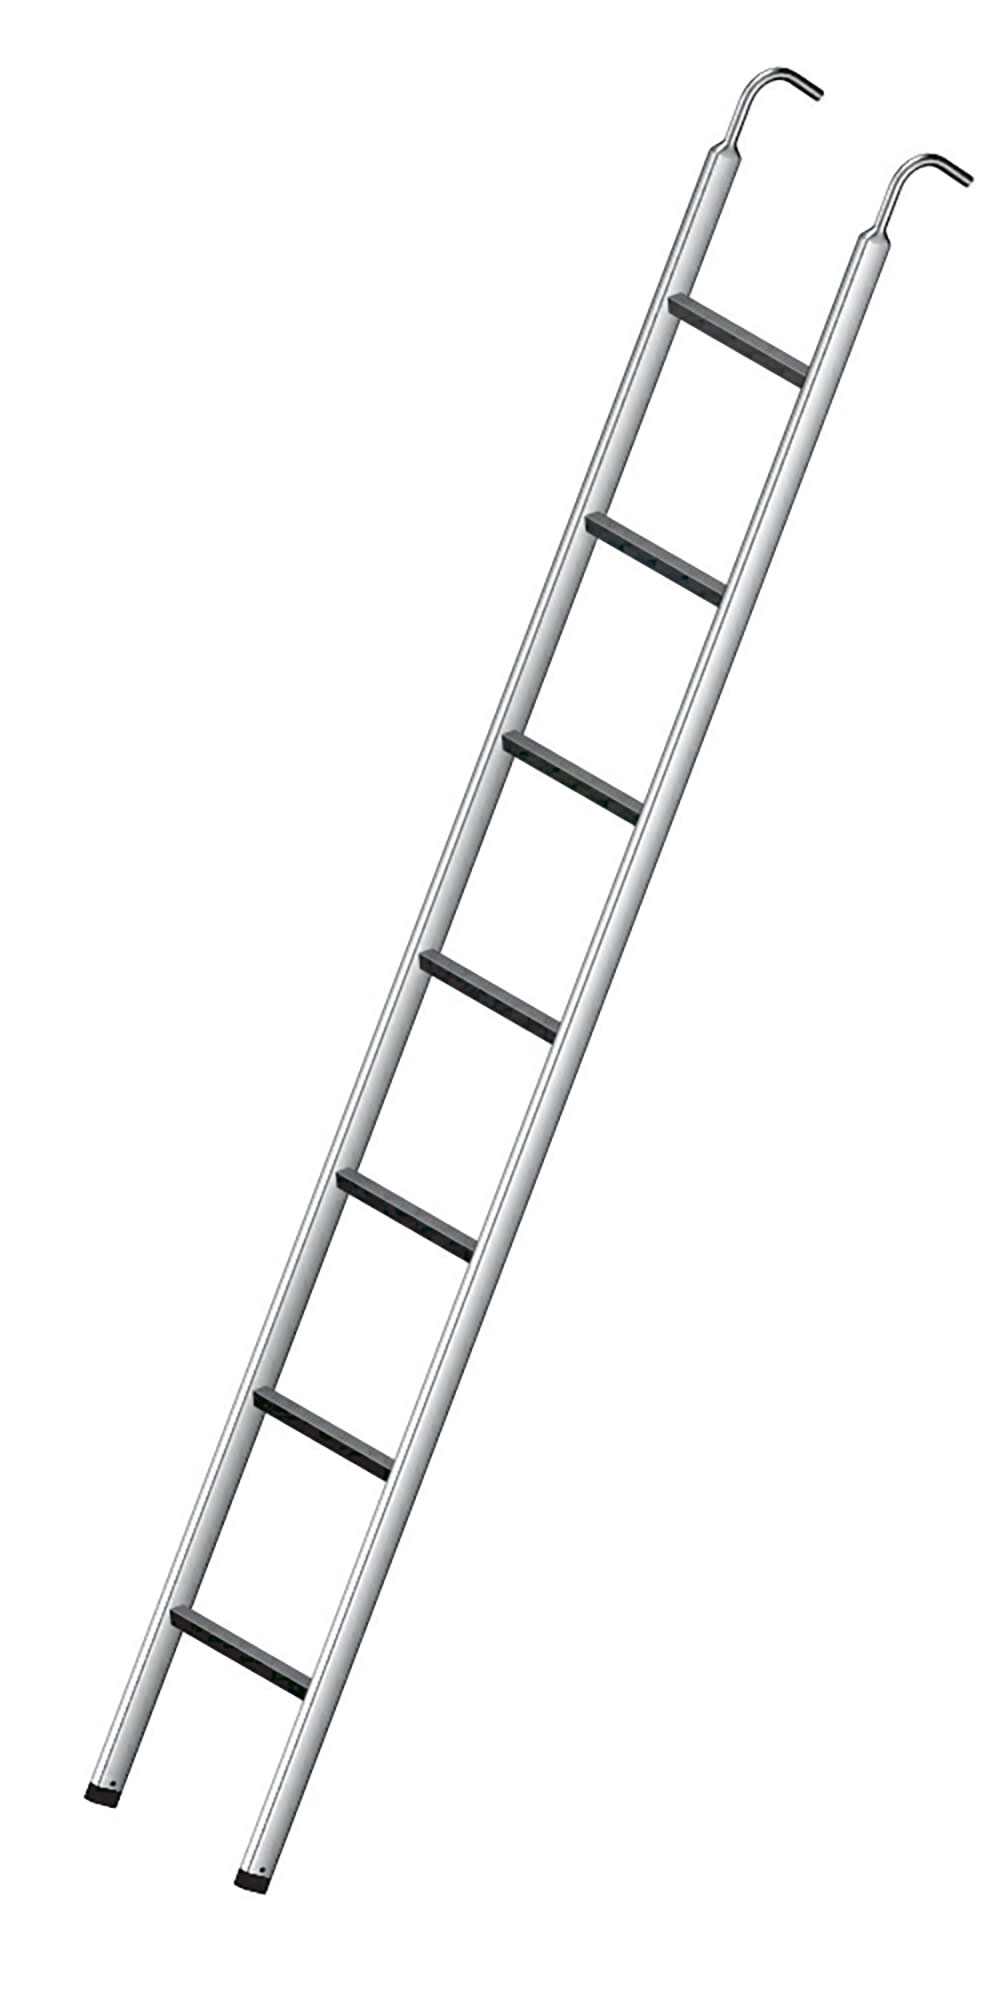 Layher storey ladder 7 rungs